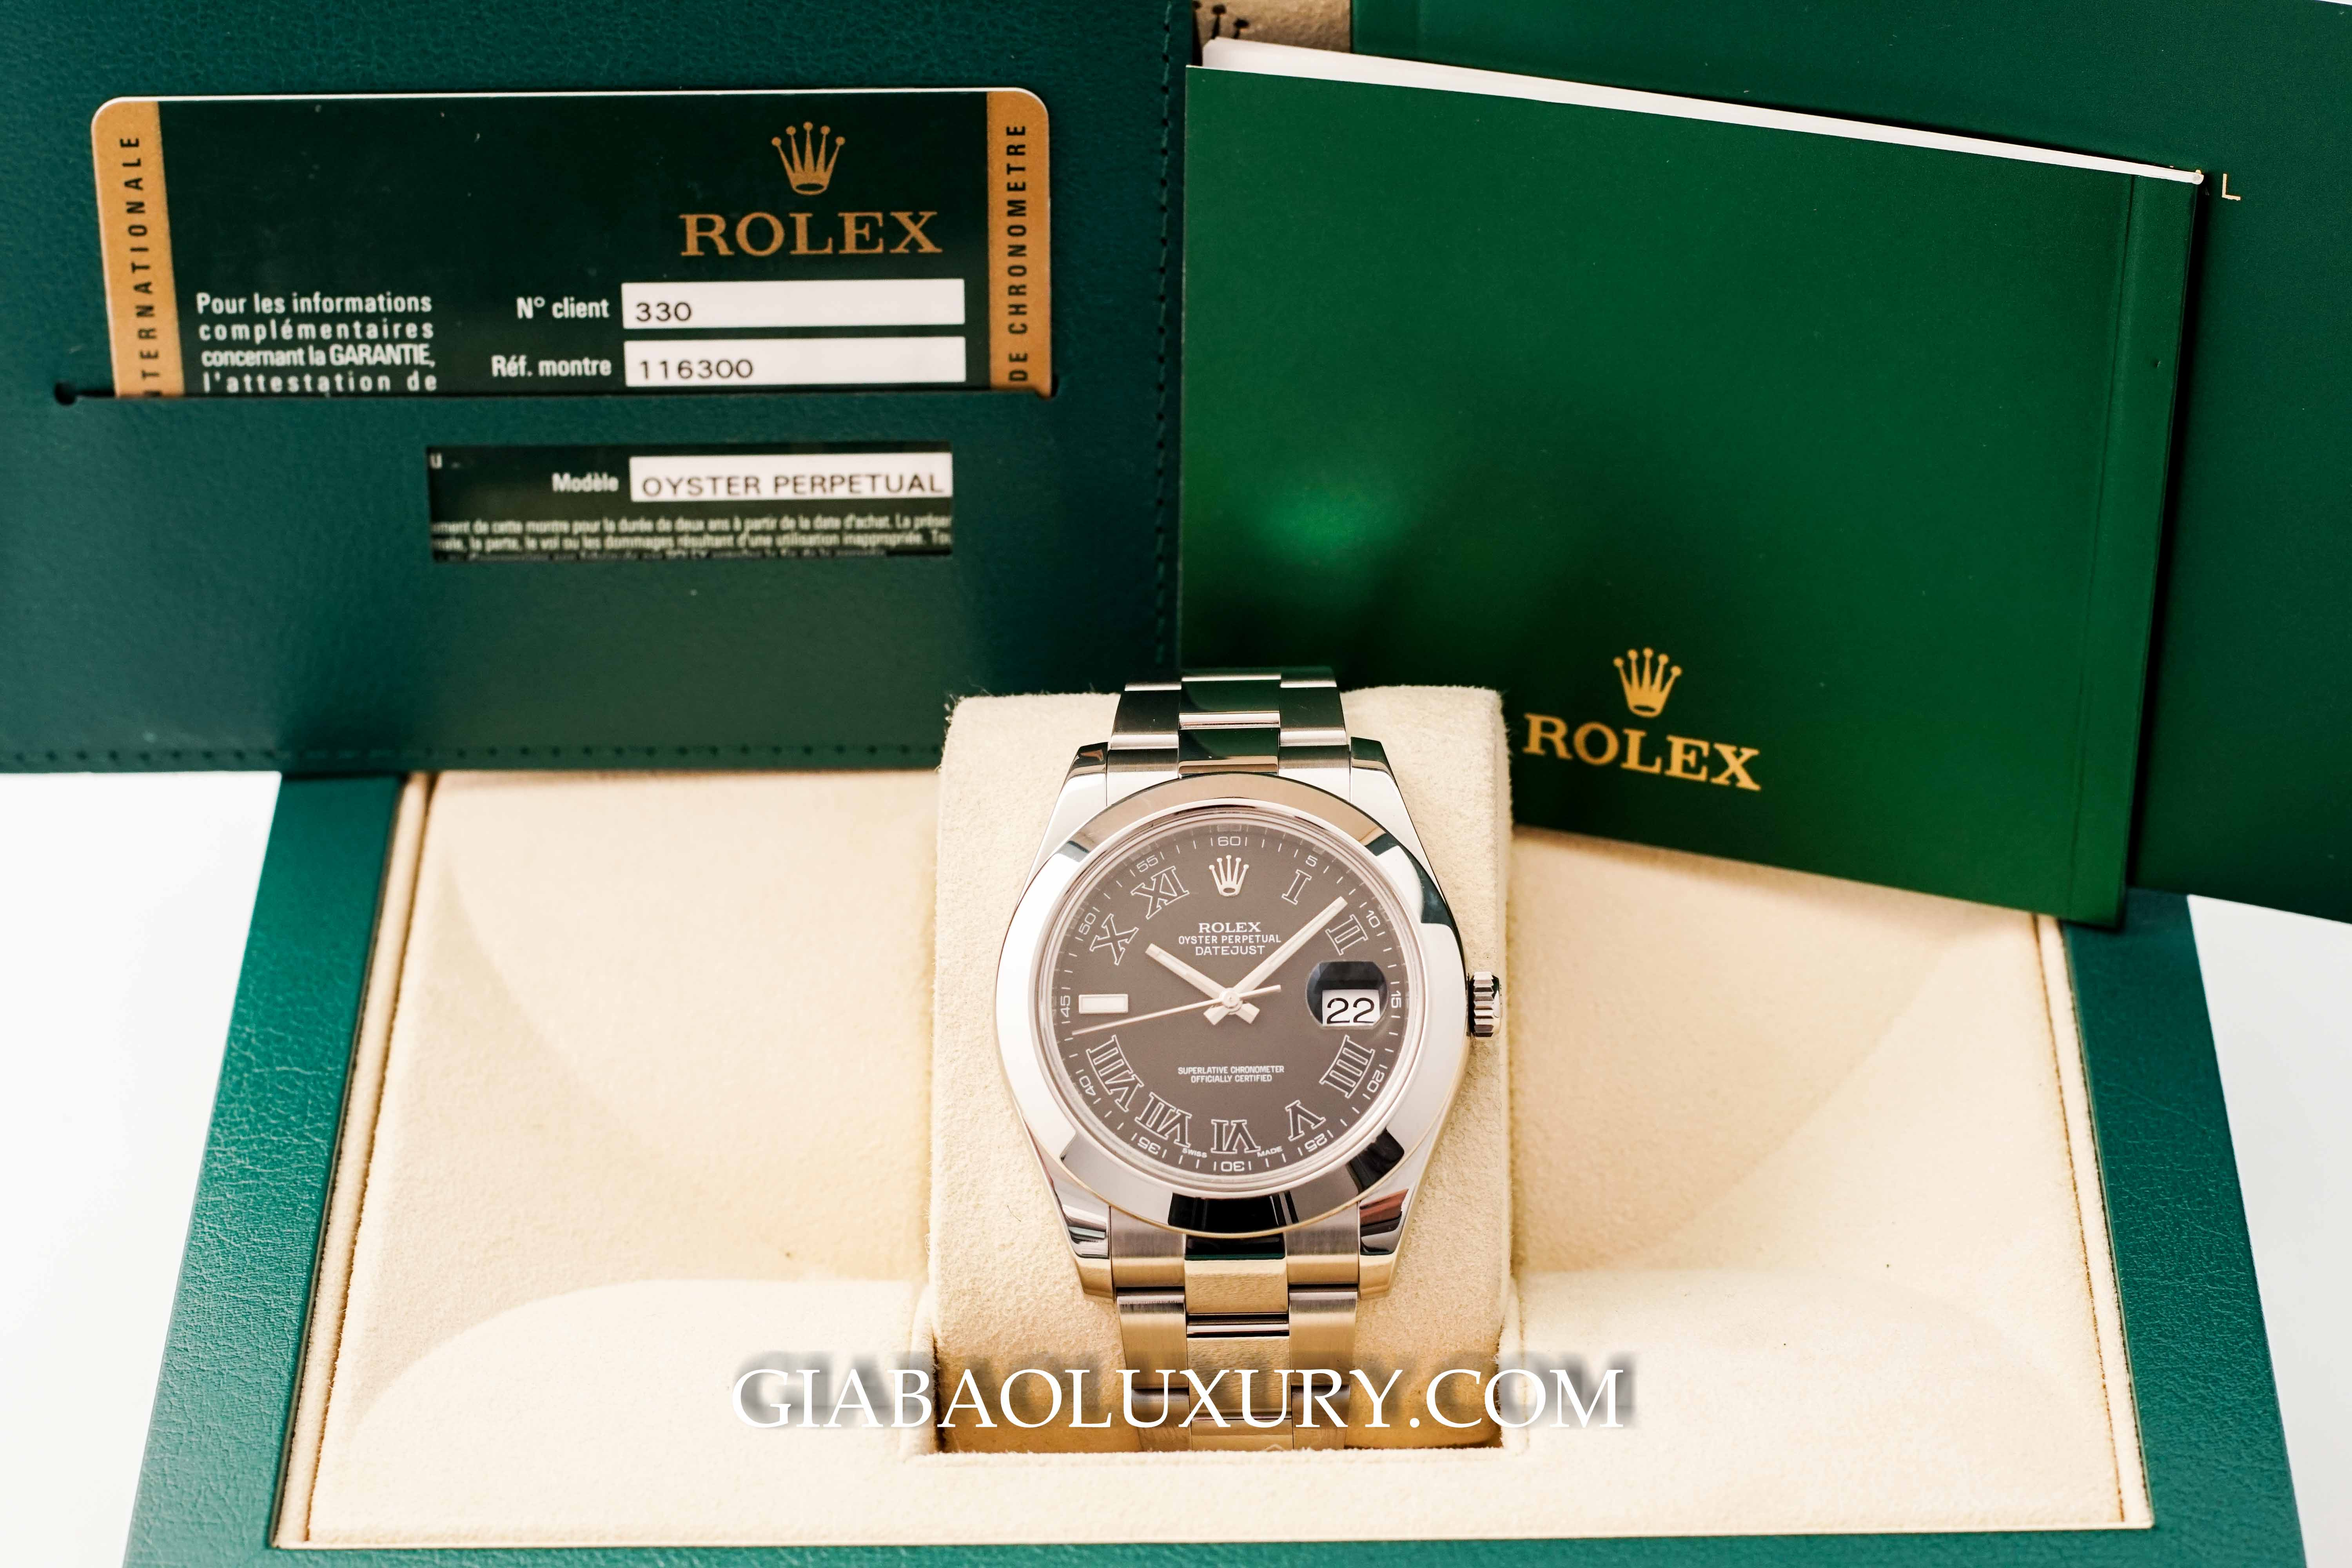 Đồng Hồ Rolex Oyster Perpetual Datejust 116300